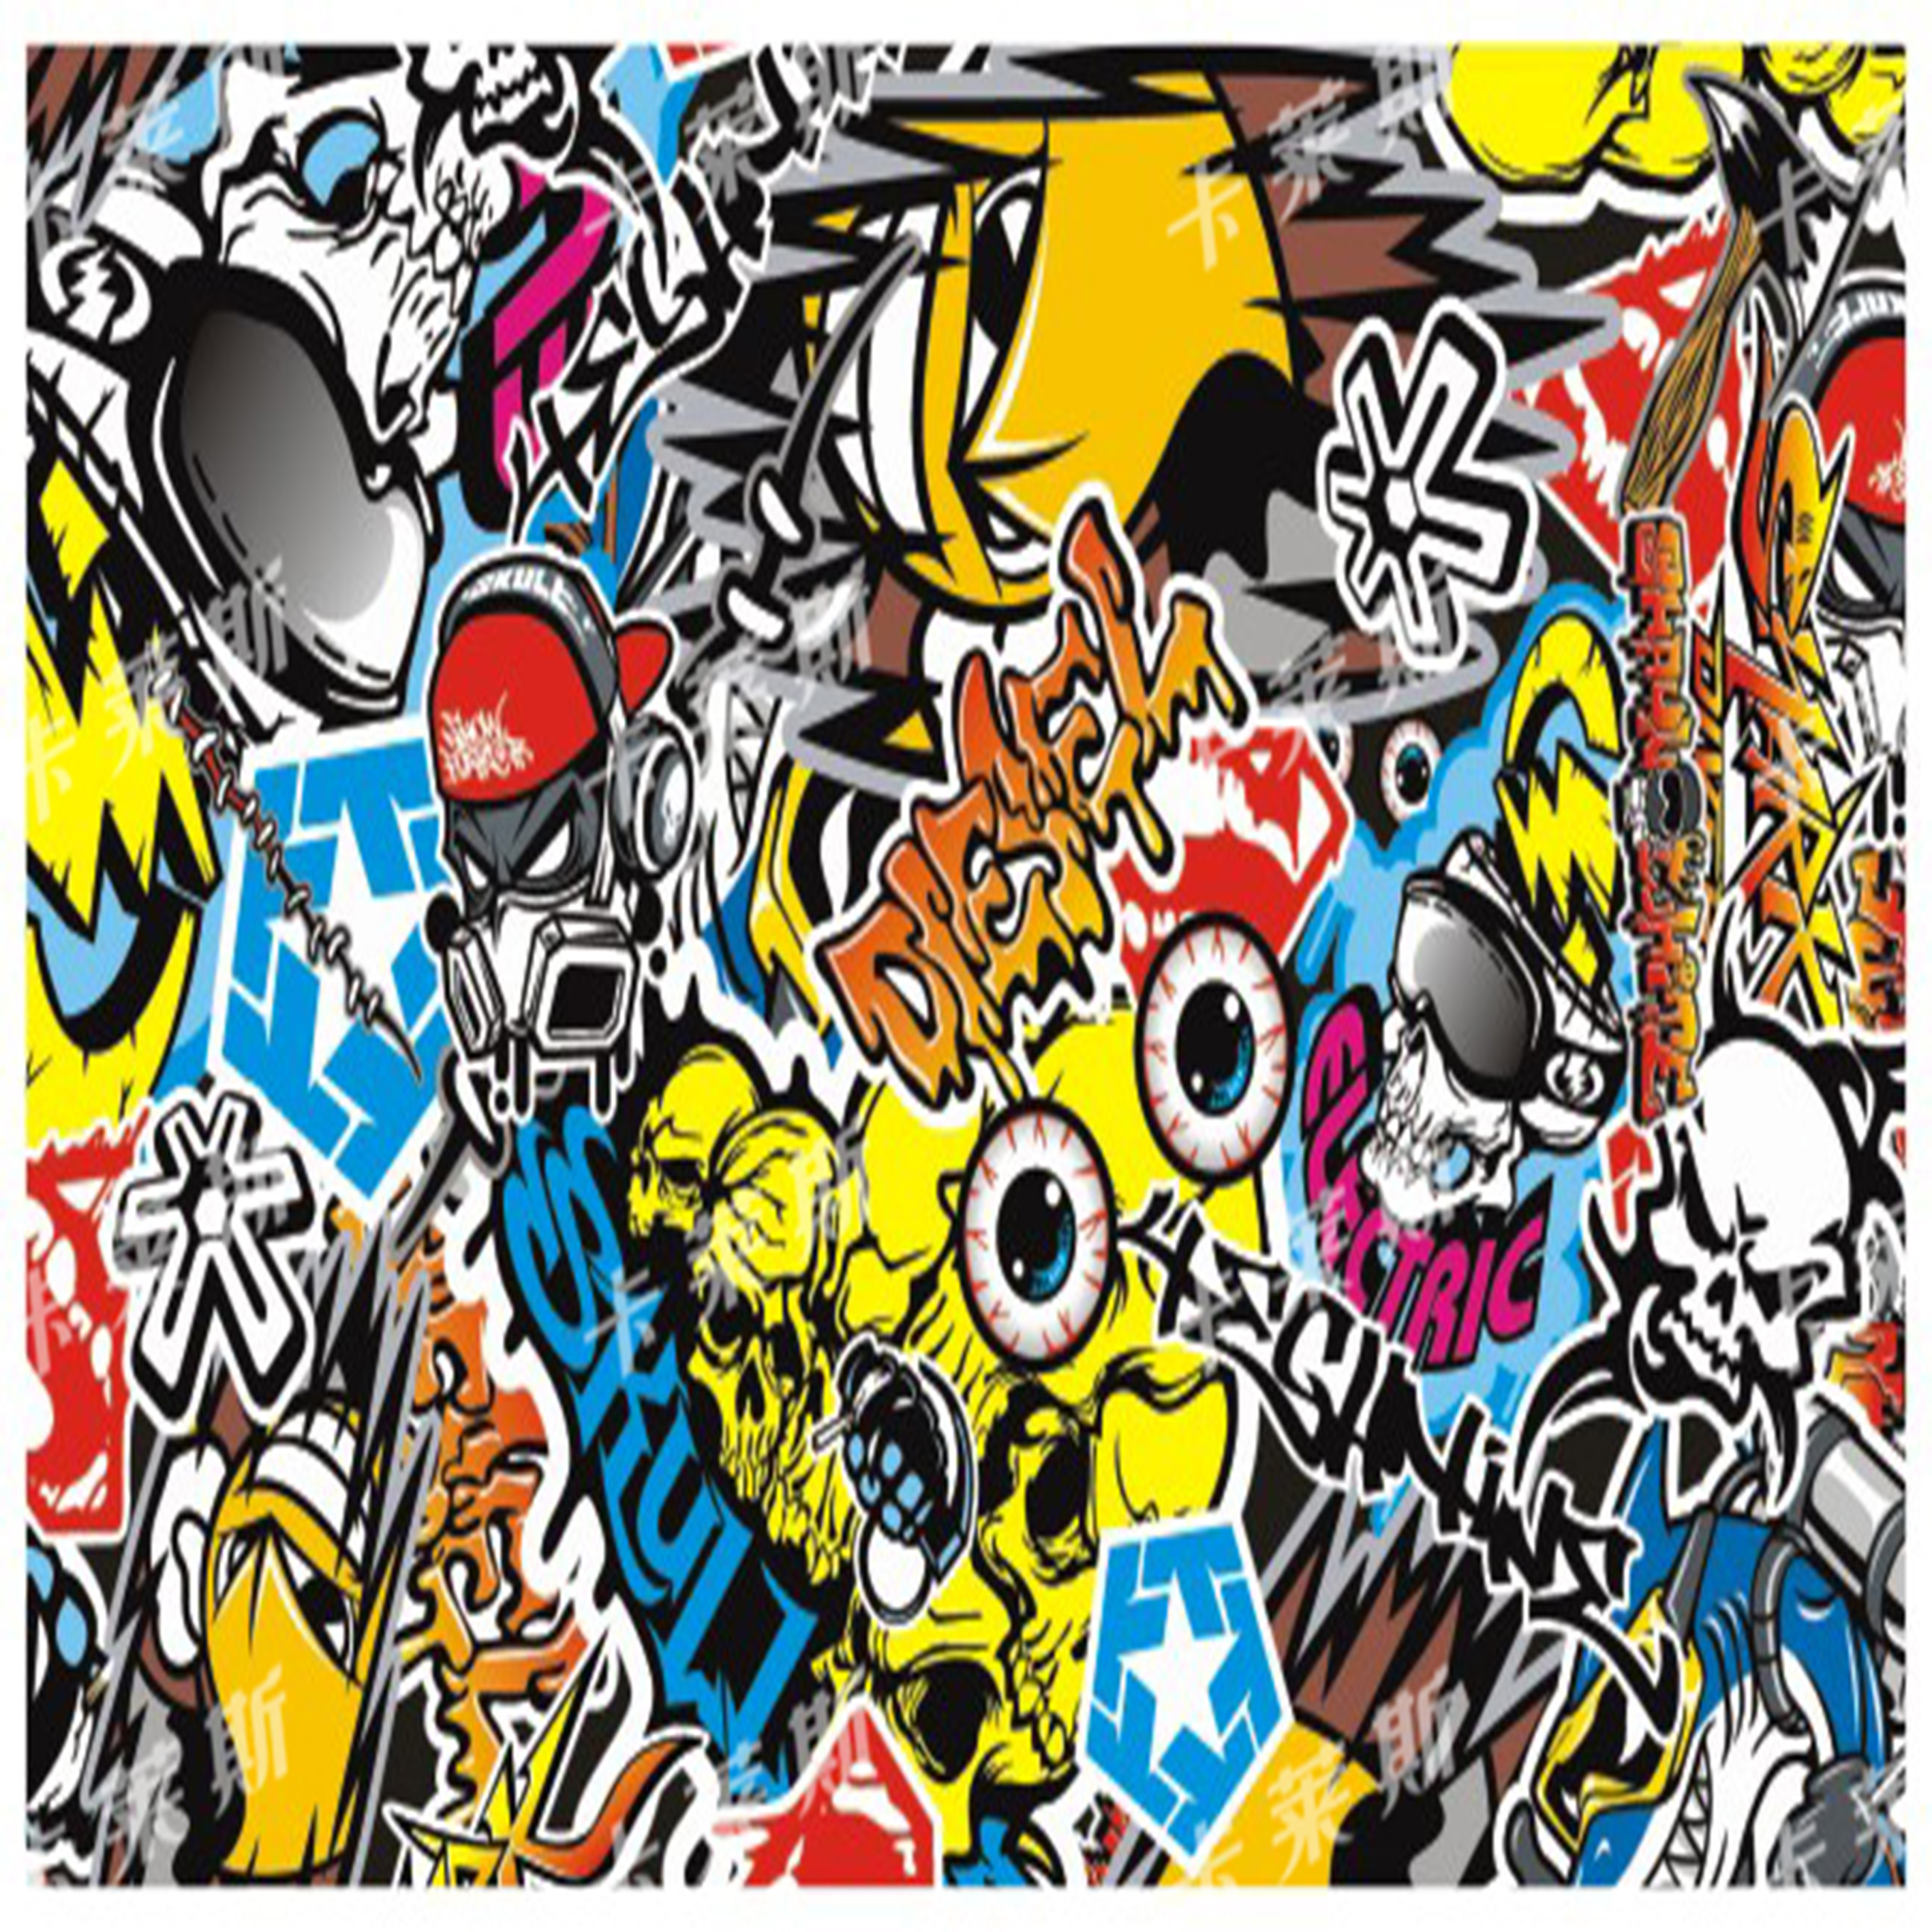 Graffiti art bomb stickers for auto 1 5210m vinyl decal sticker car change color doodle film